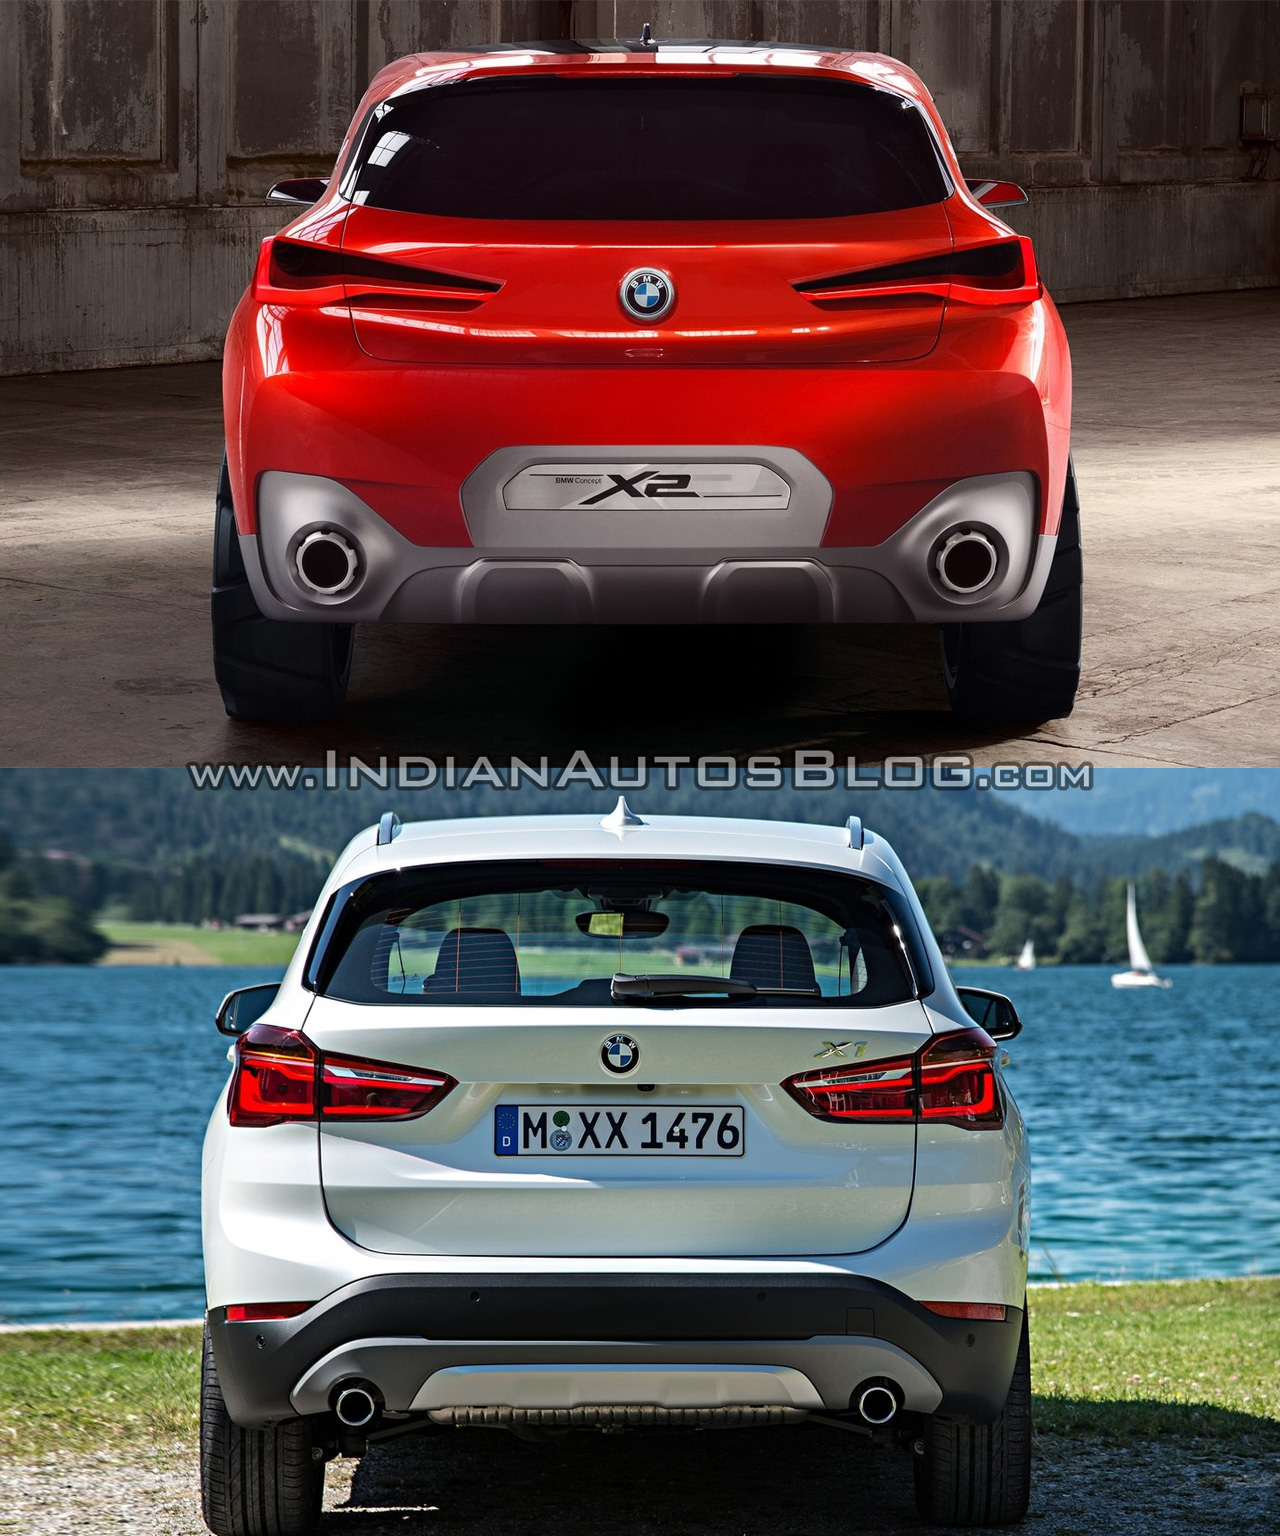 Bmwcarimage: BMW X2 Vs. BMW X1 Rear Image